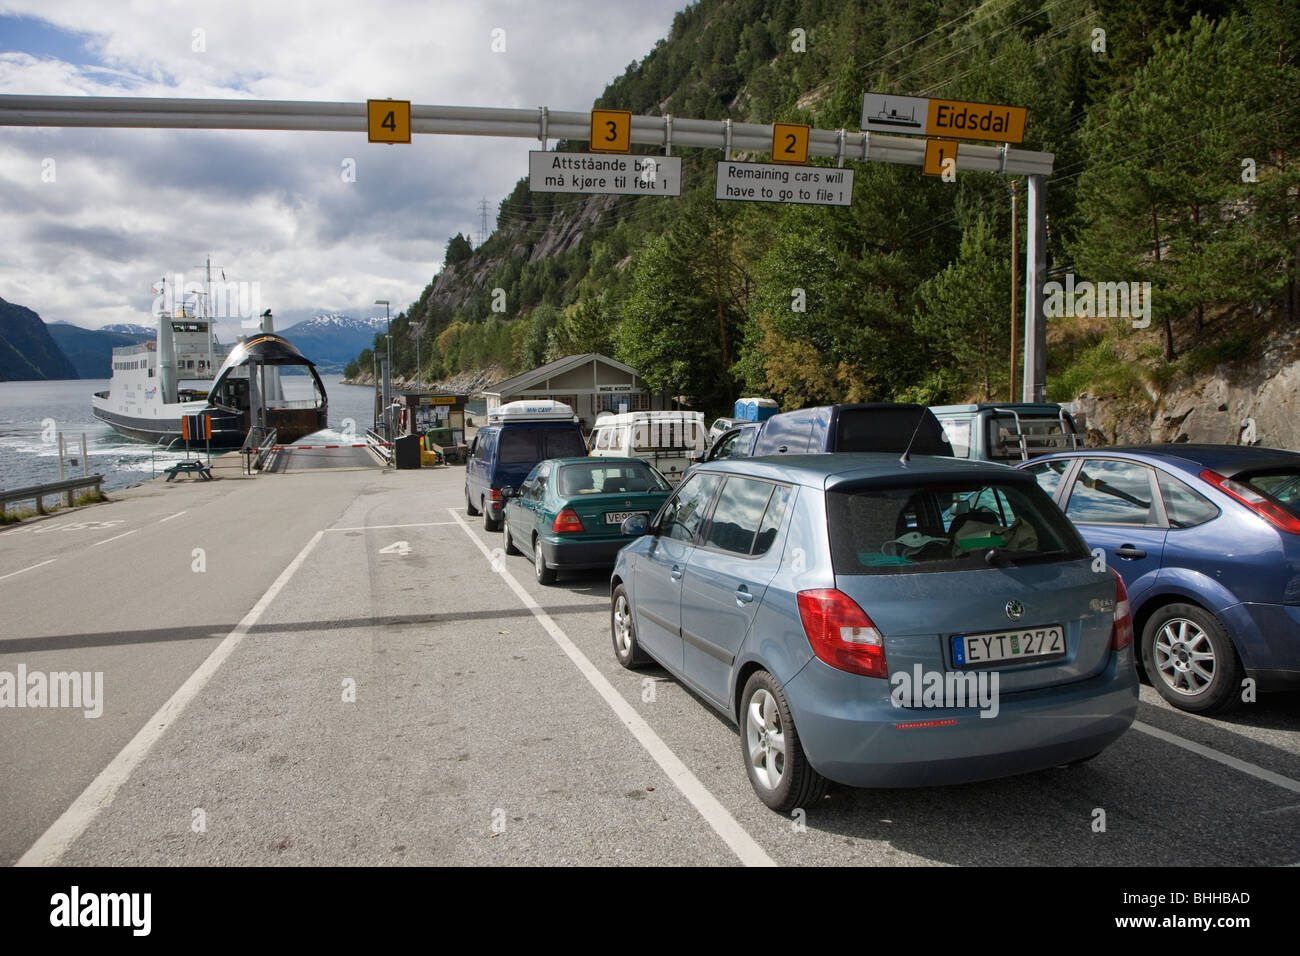 Cars on their way to ferry berth, Norway. Stock Photo